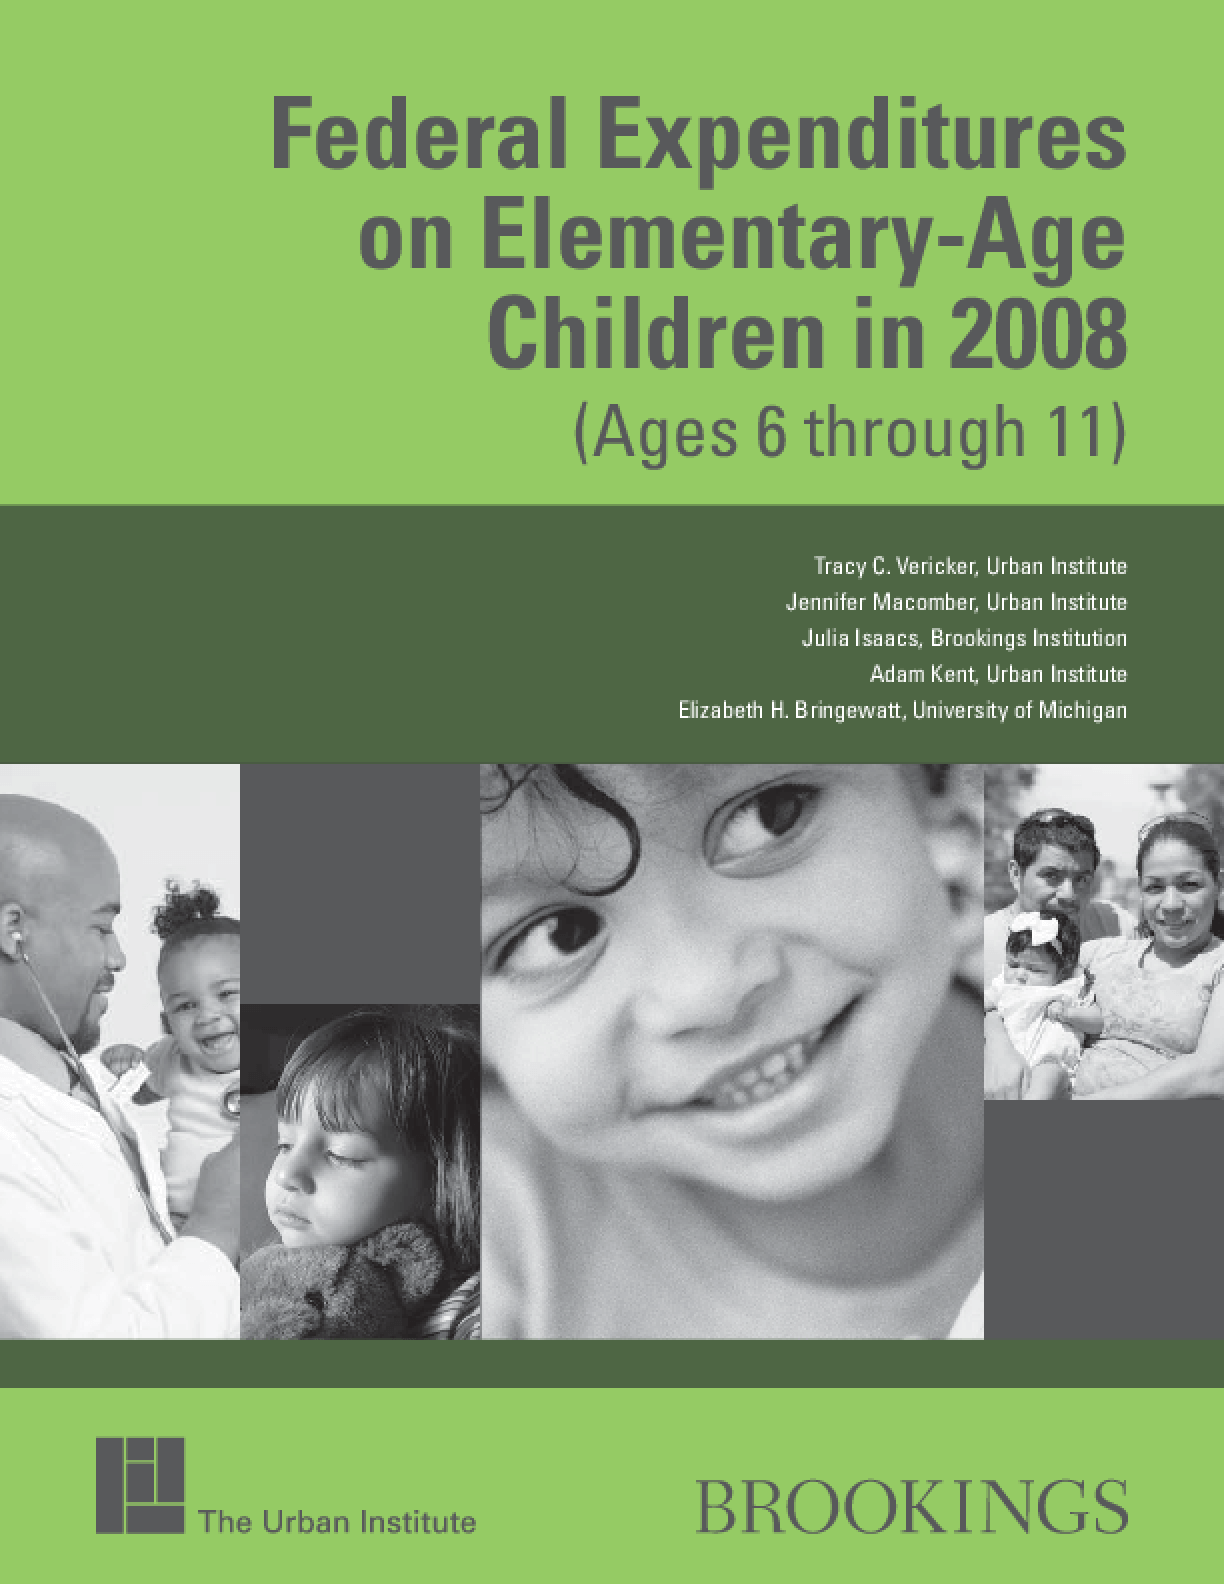 Federal Expenditures on Elementary-Age Children in 2008 (Ages 6 through 11)